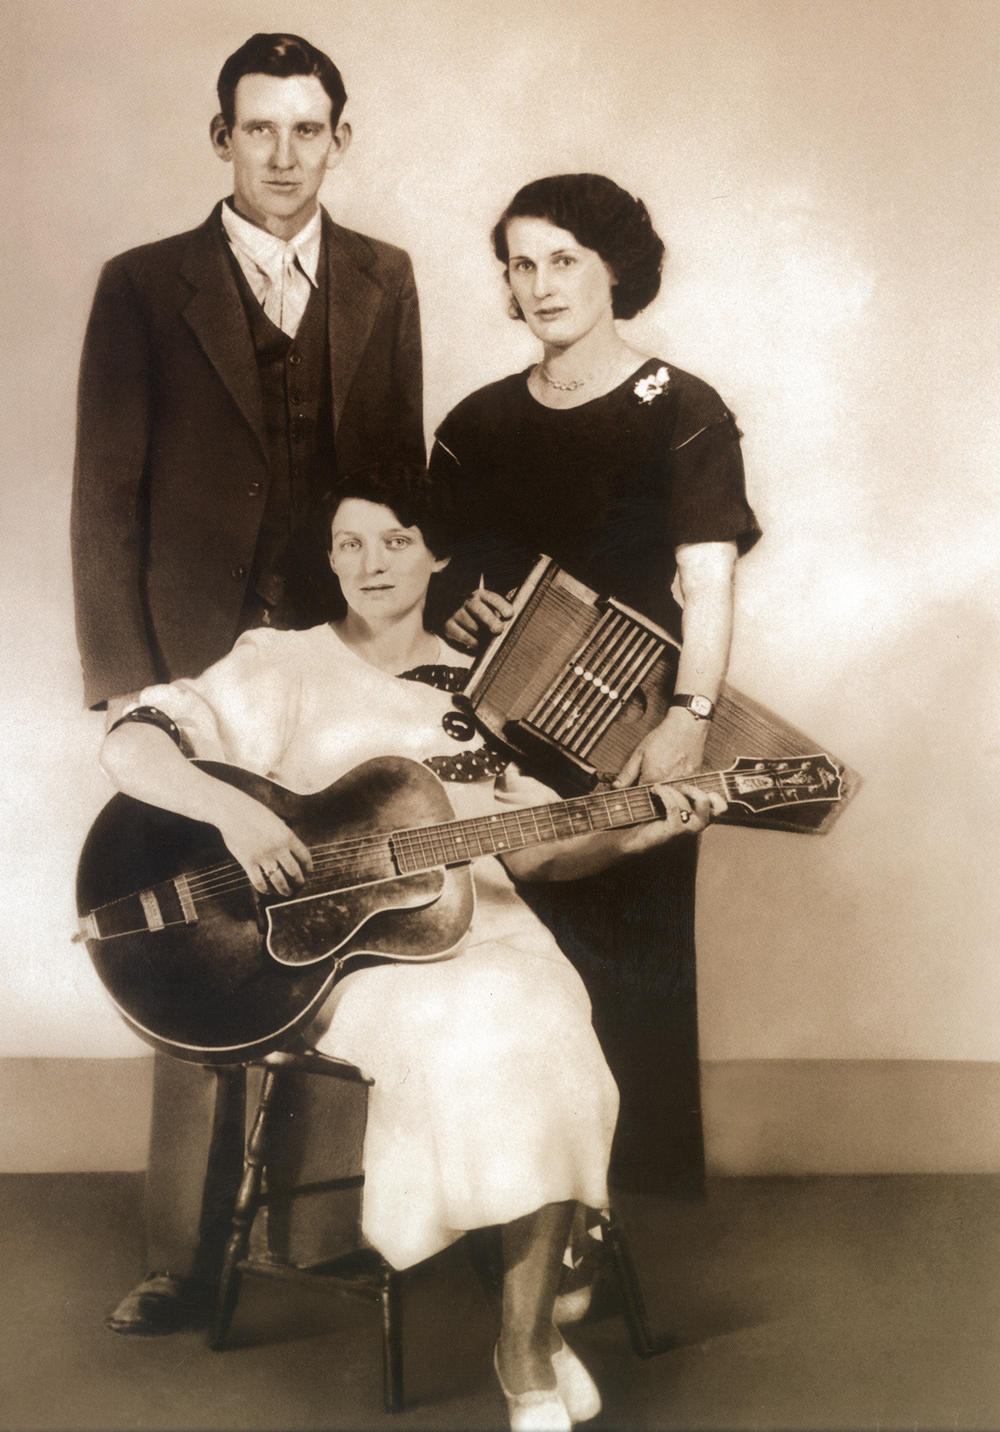 The Original Carter Family, from left: AP, Maybelle and Sara Carter c. 1930